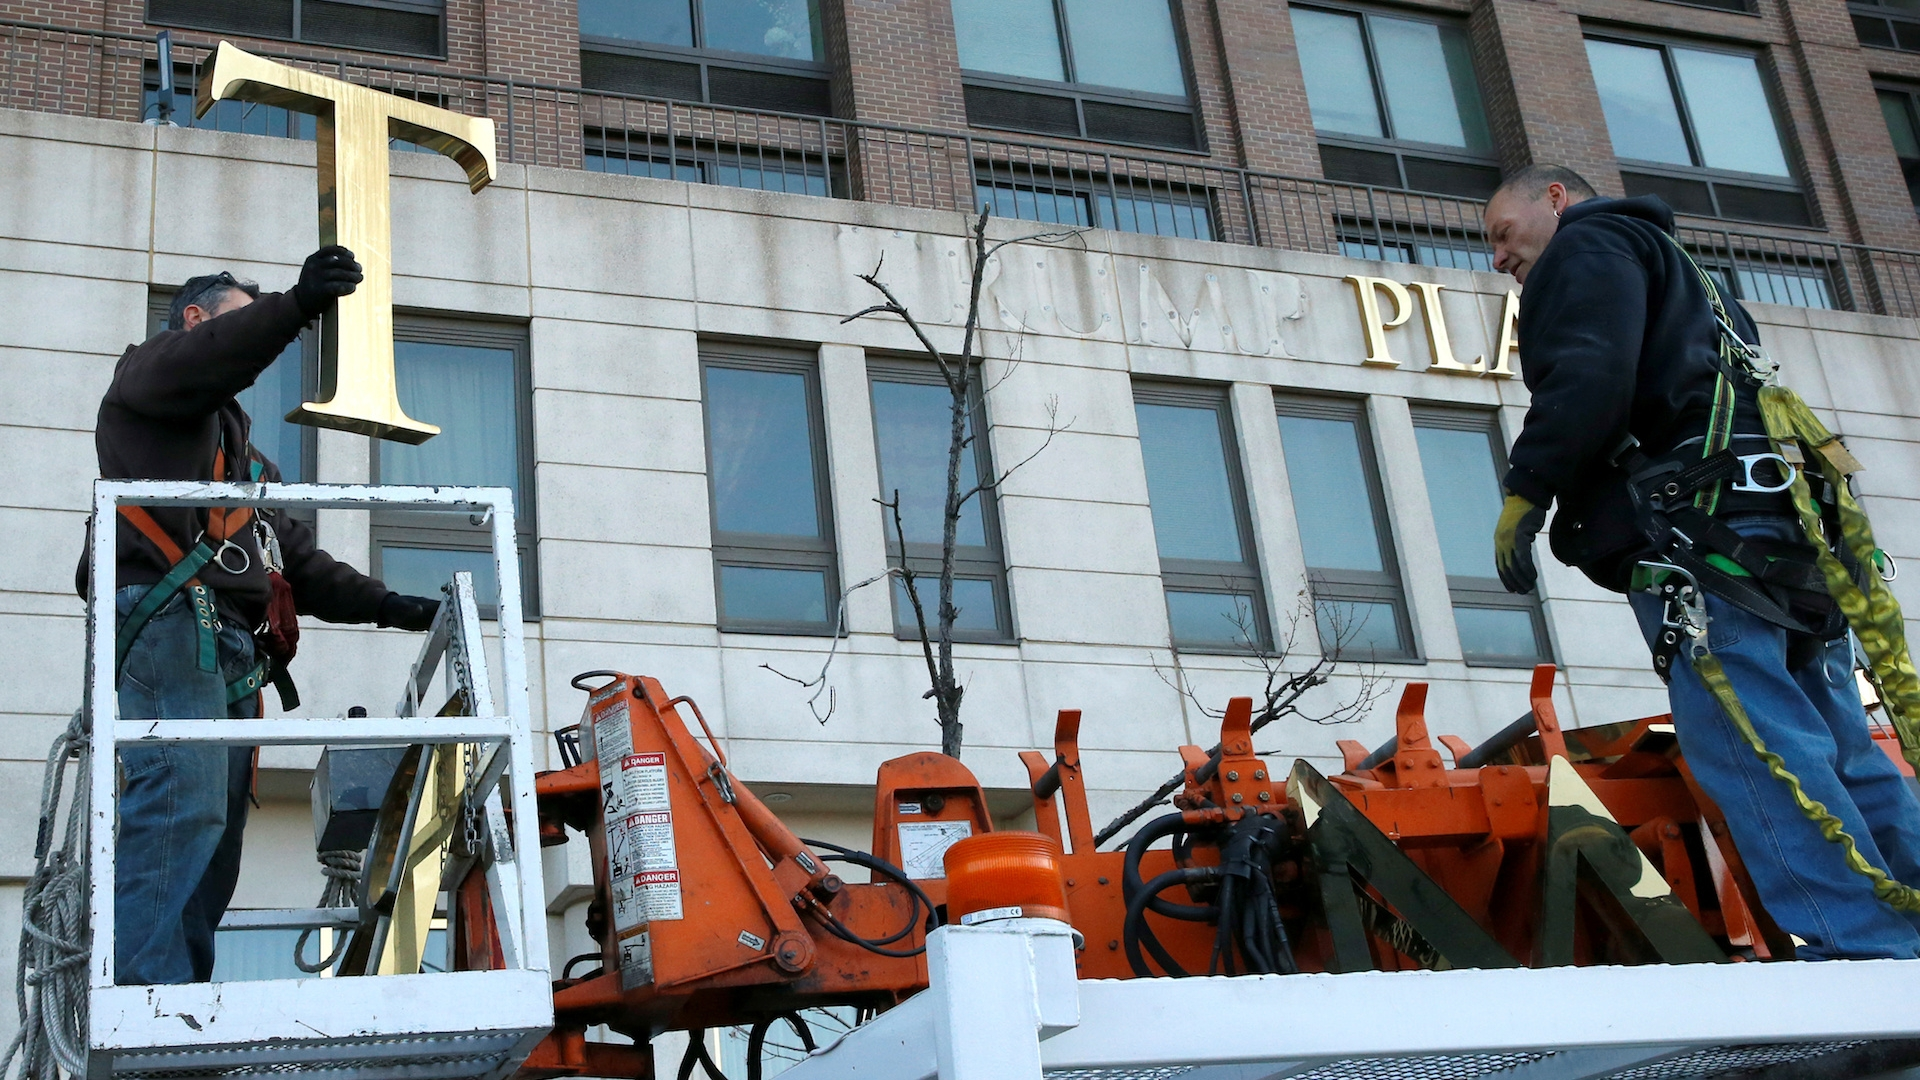 For the second time in two days, a building called Trump Place decides to take down the president's name